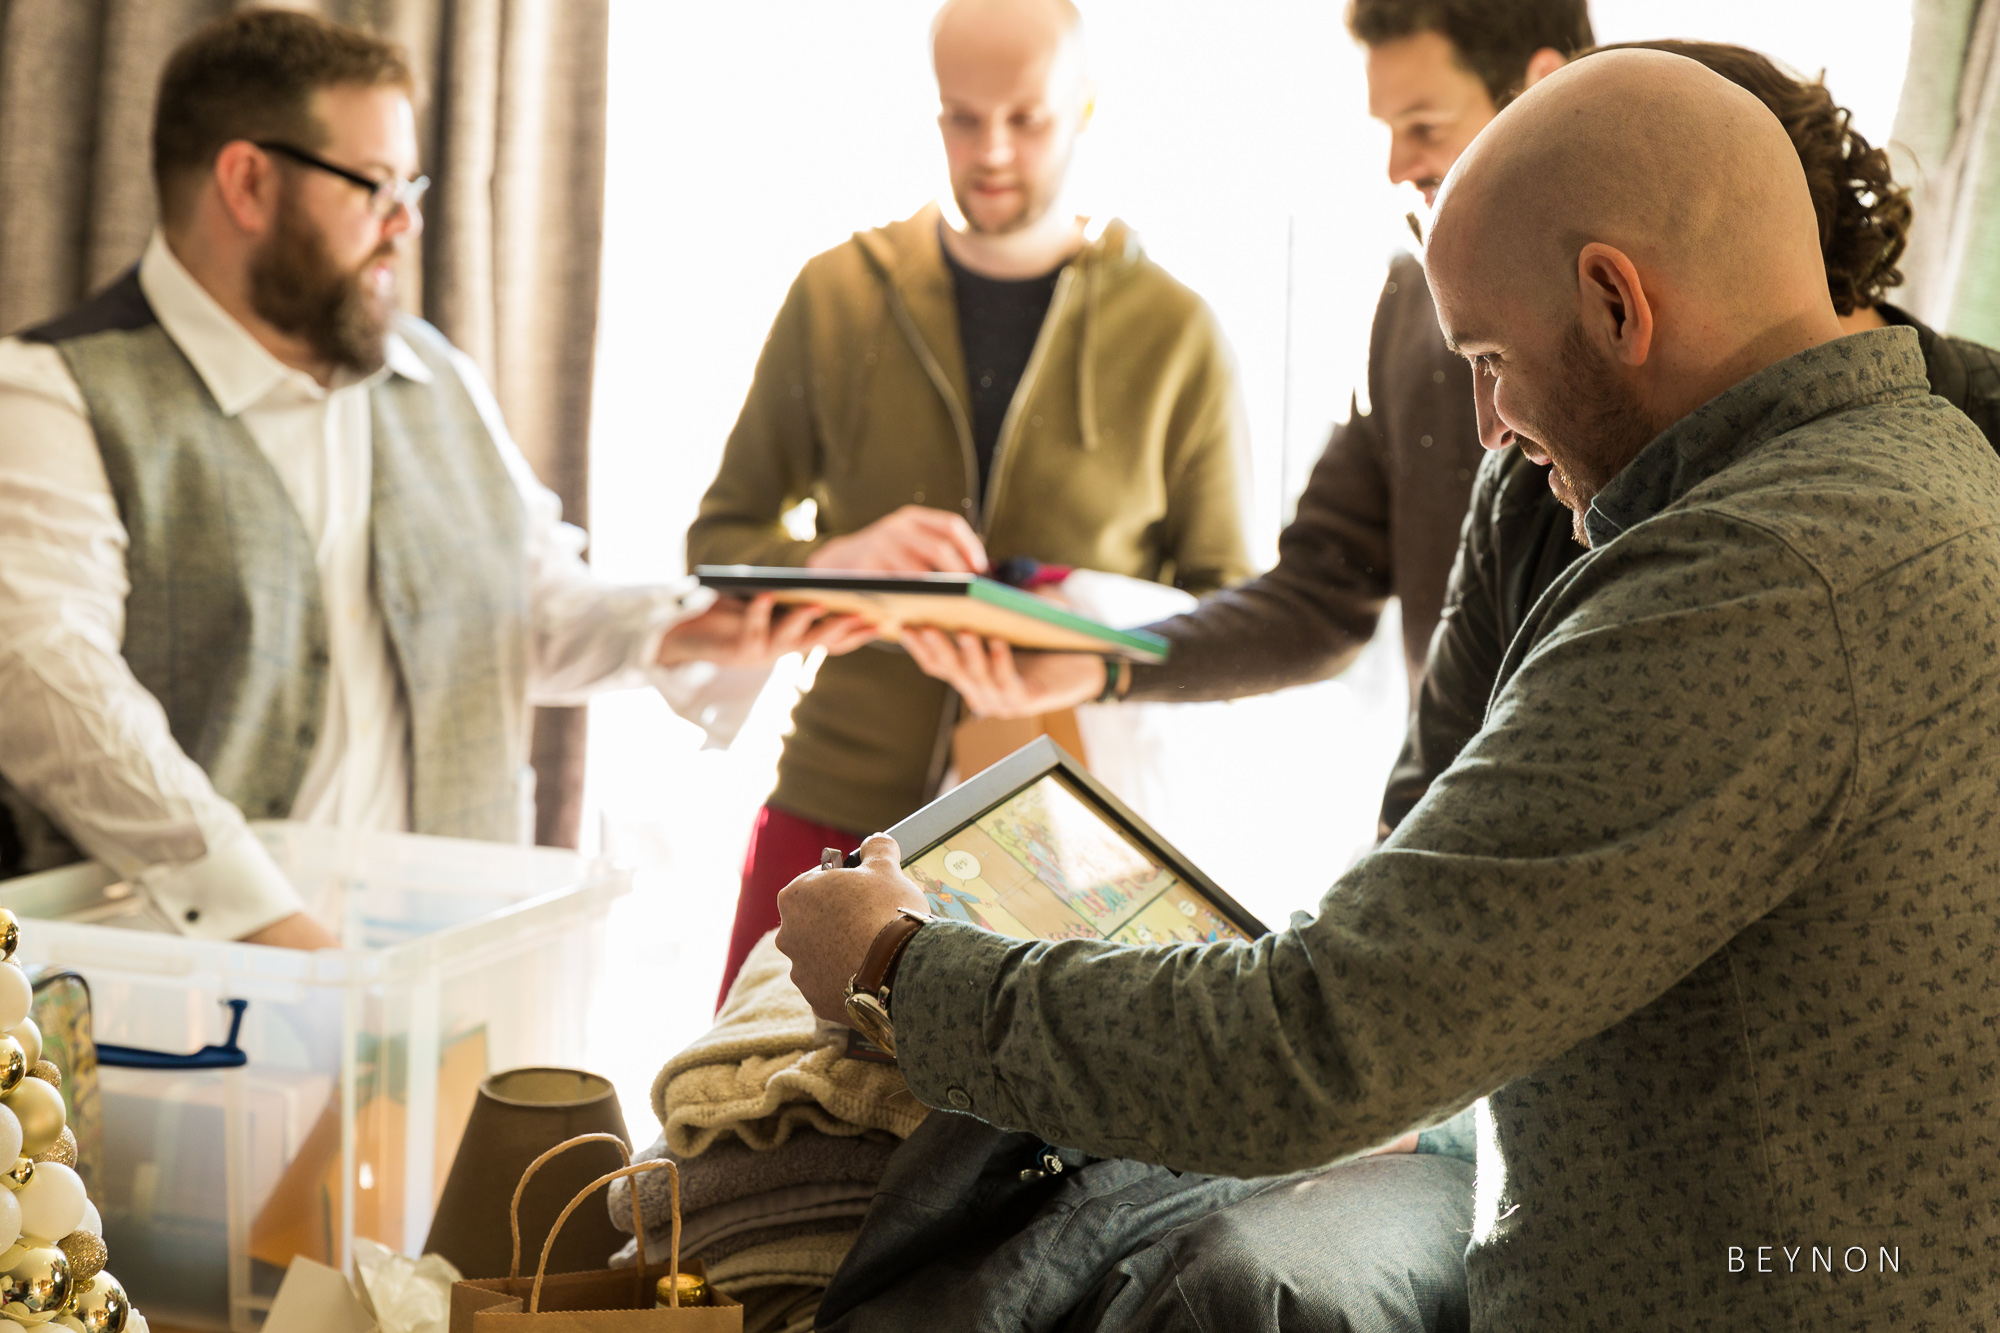 The Groom hands out presents to his groomsmen